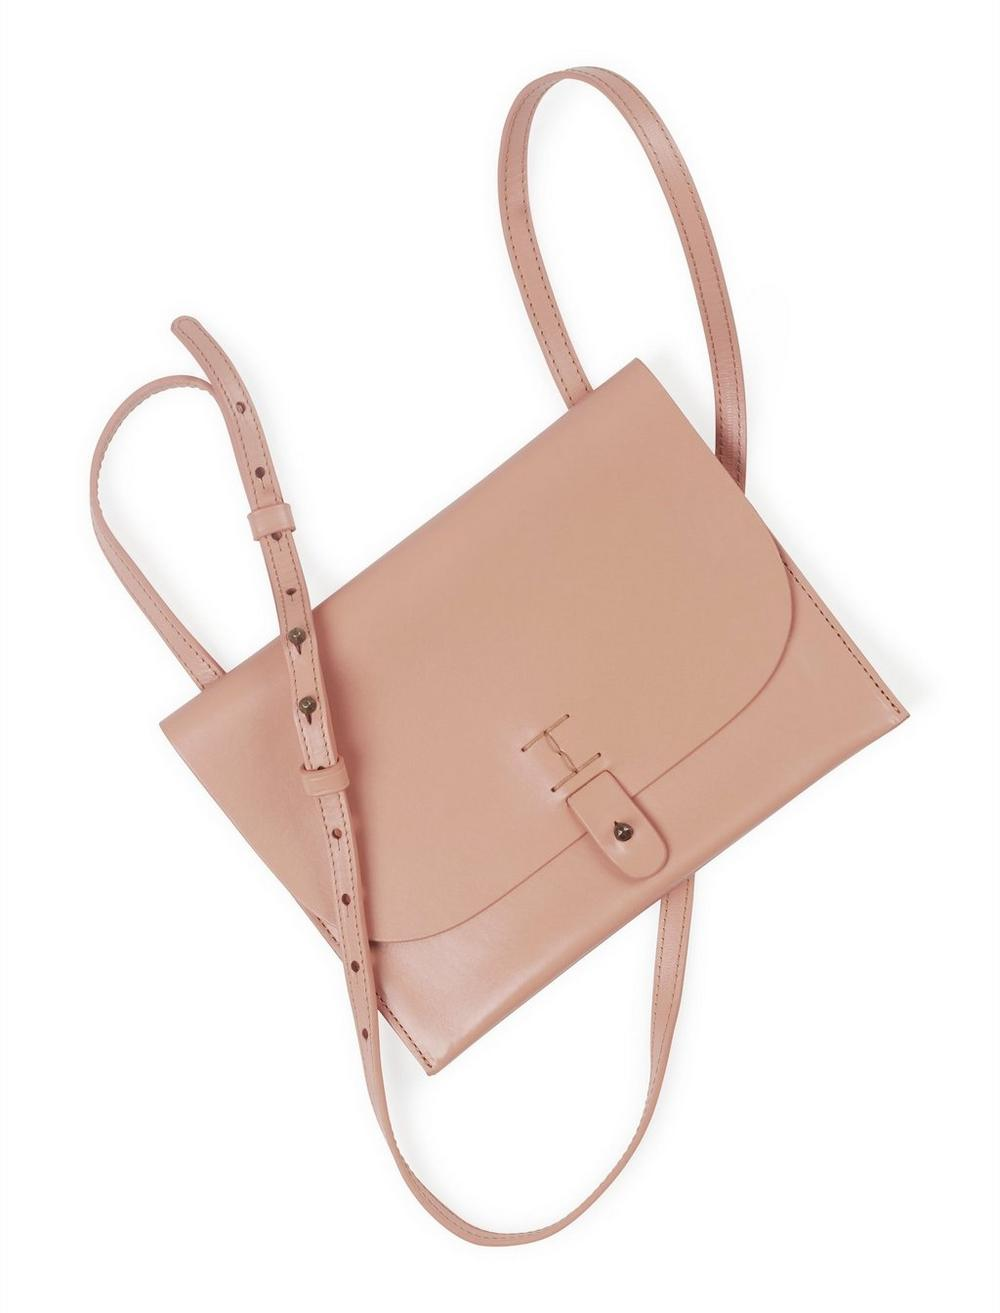 THE POINT LEATHER CROSSBODY BAG, image 4